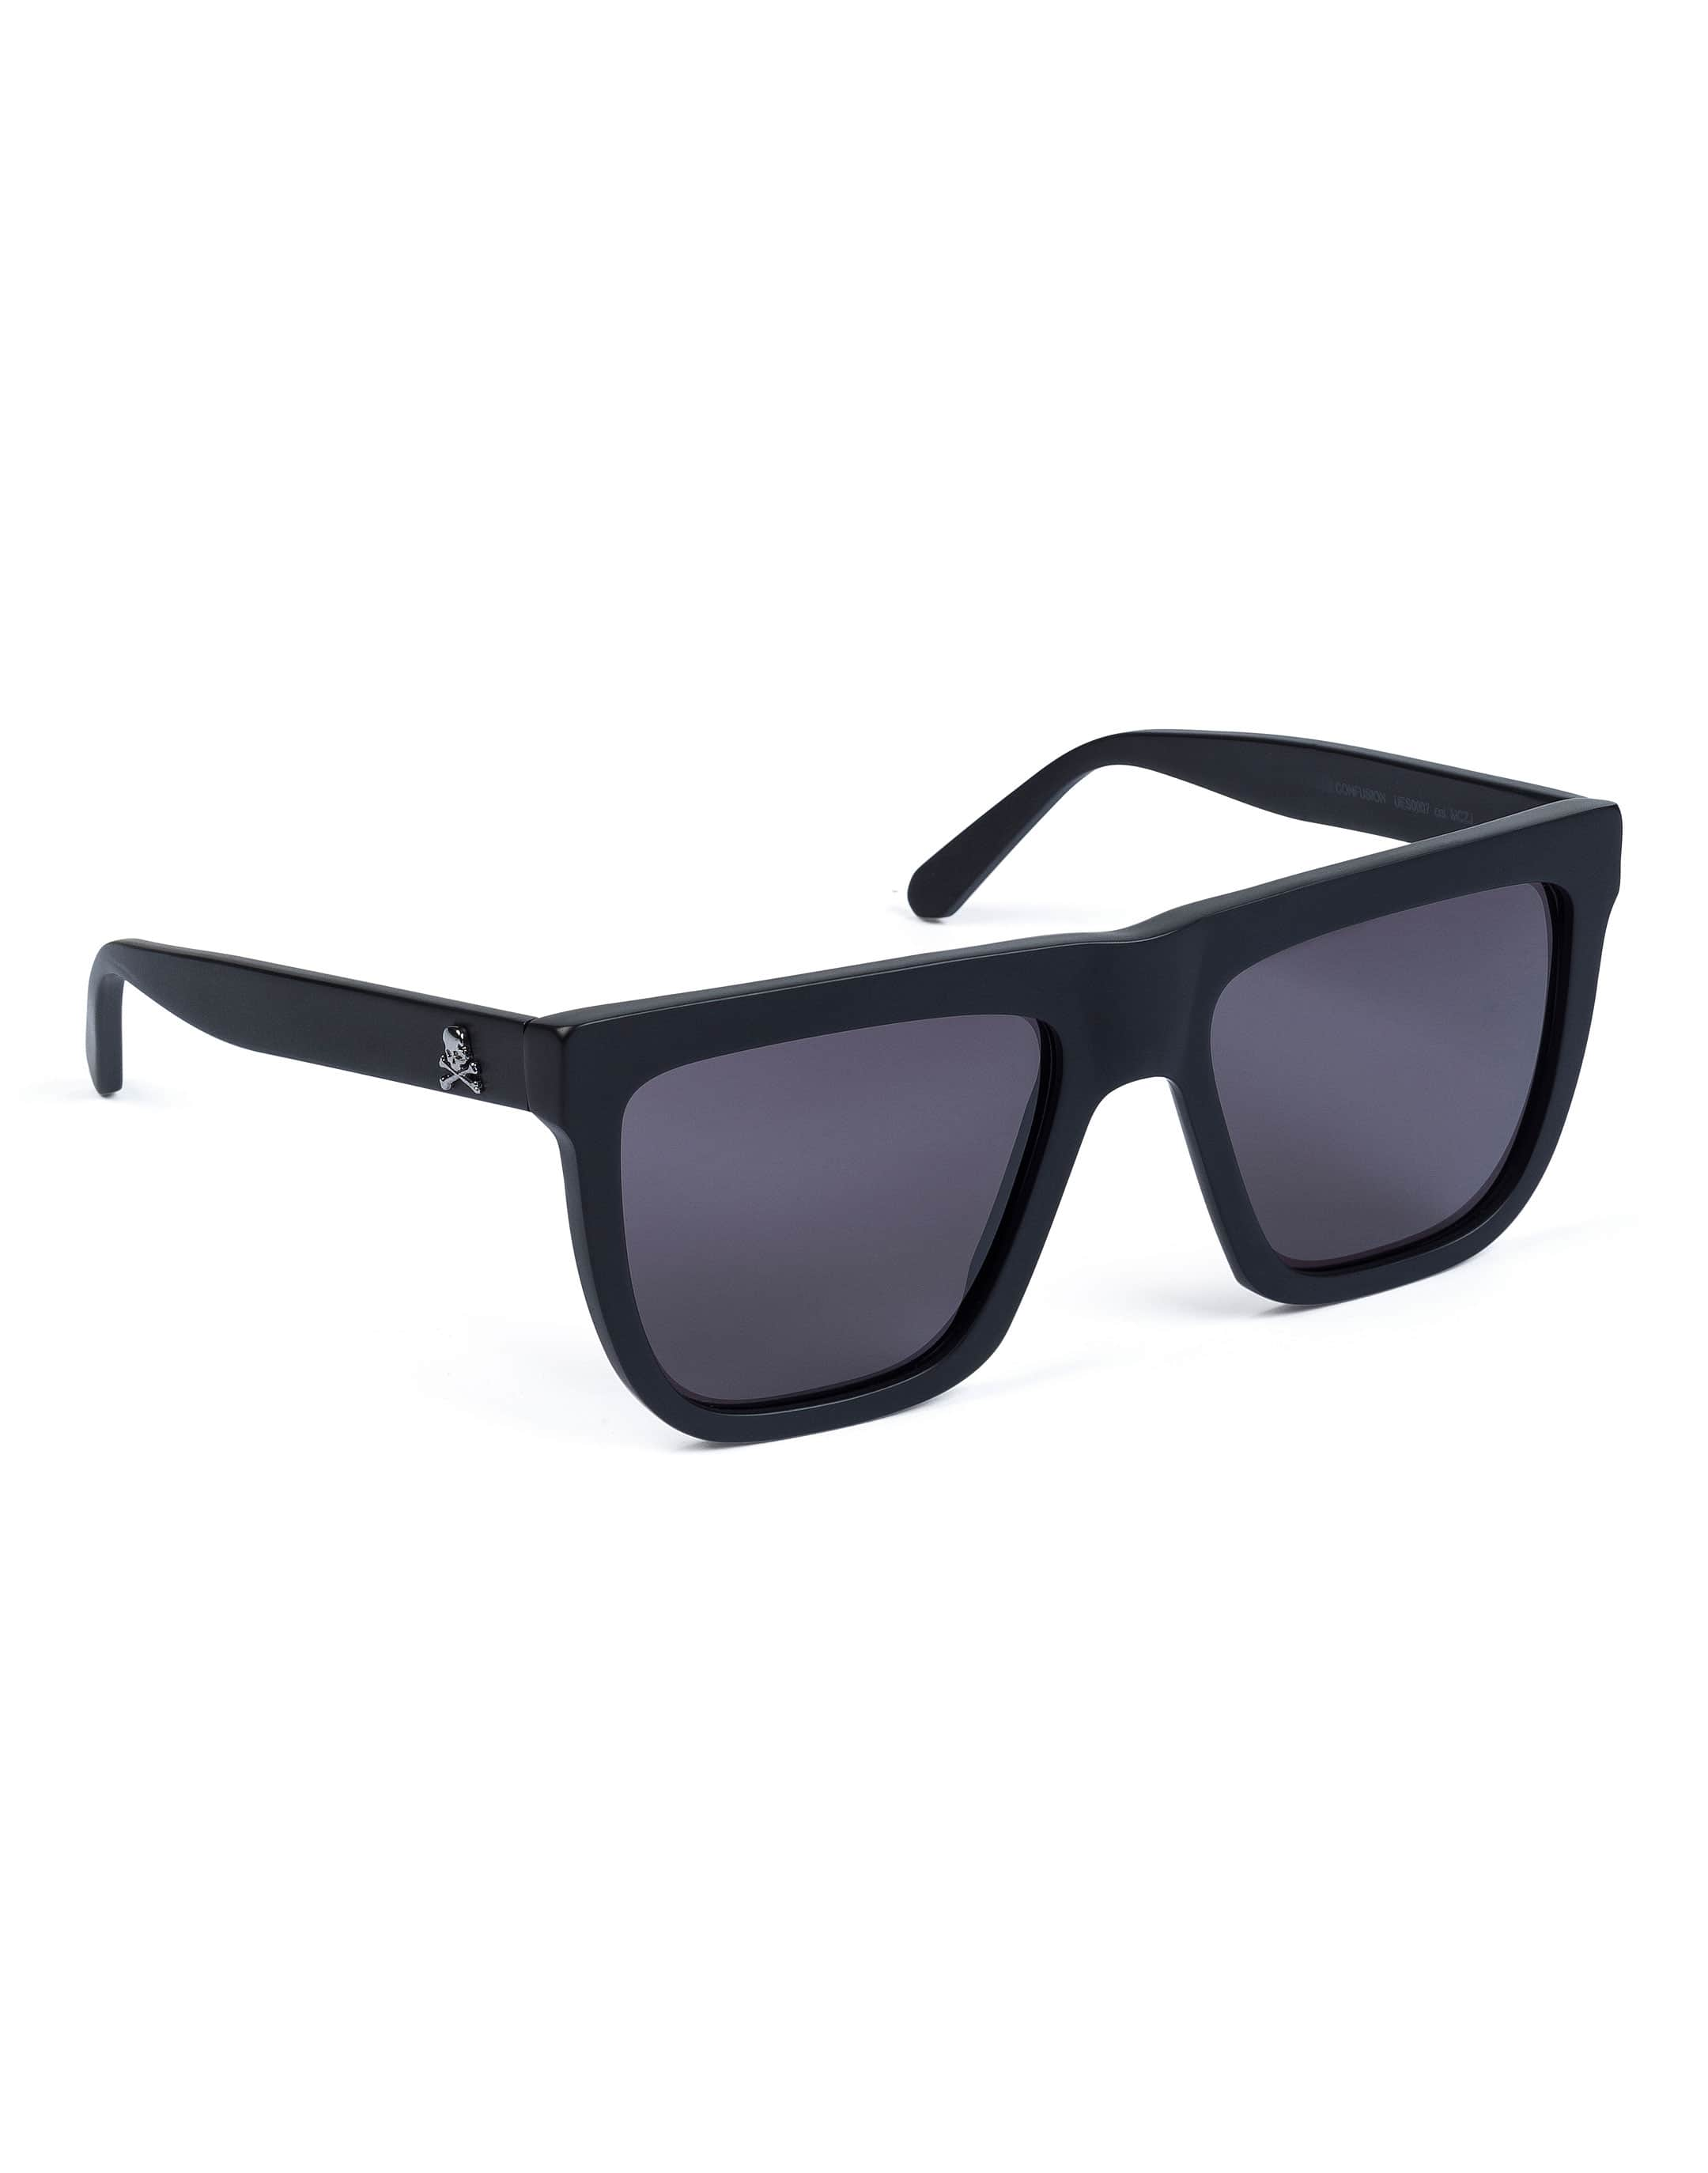 9f1ed15d229 Sunglasses